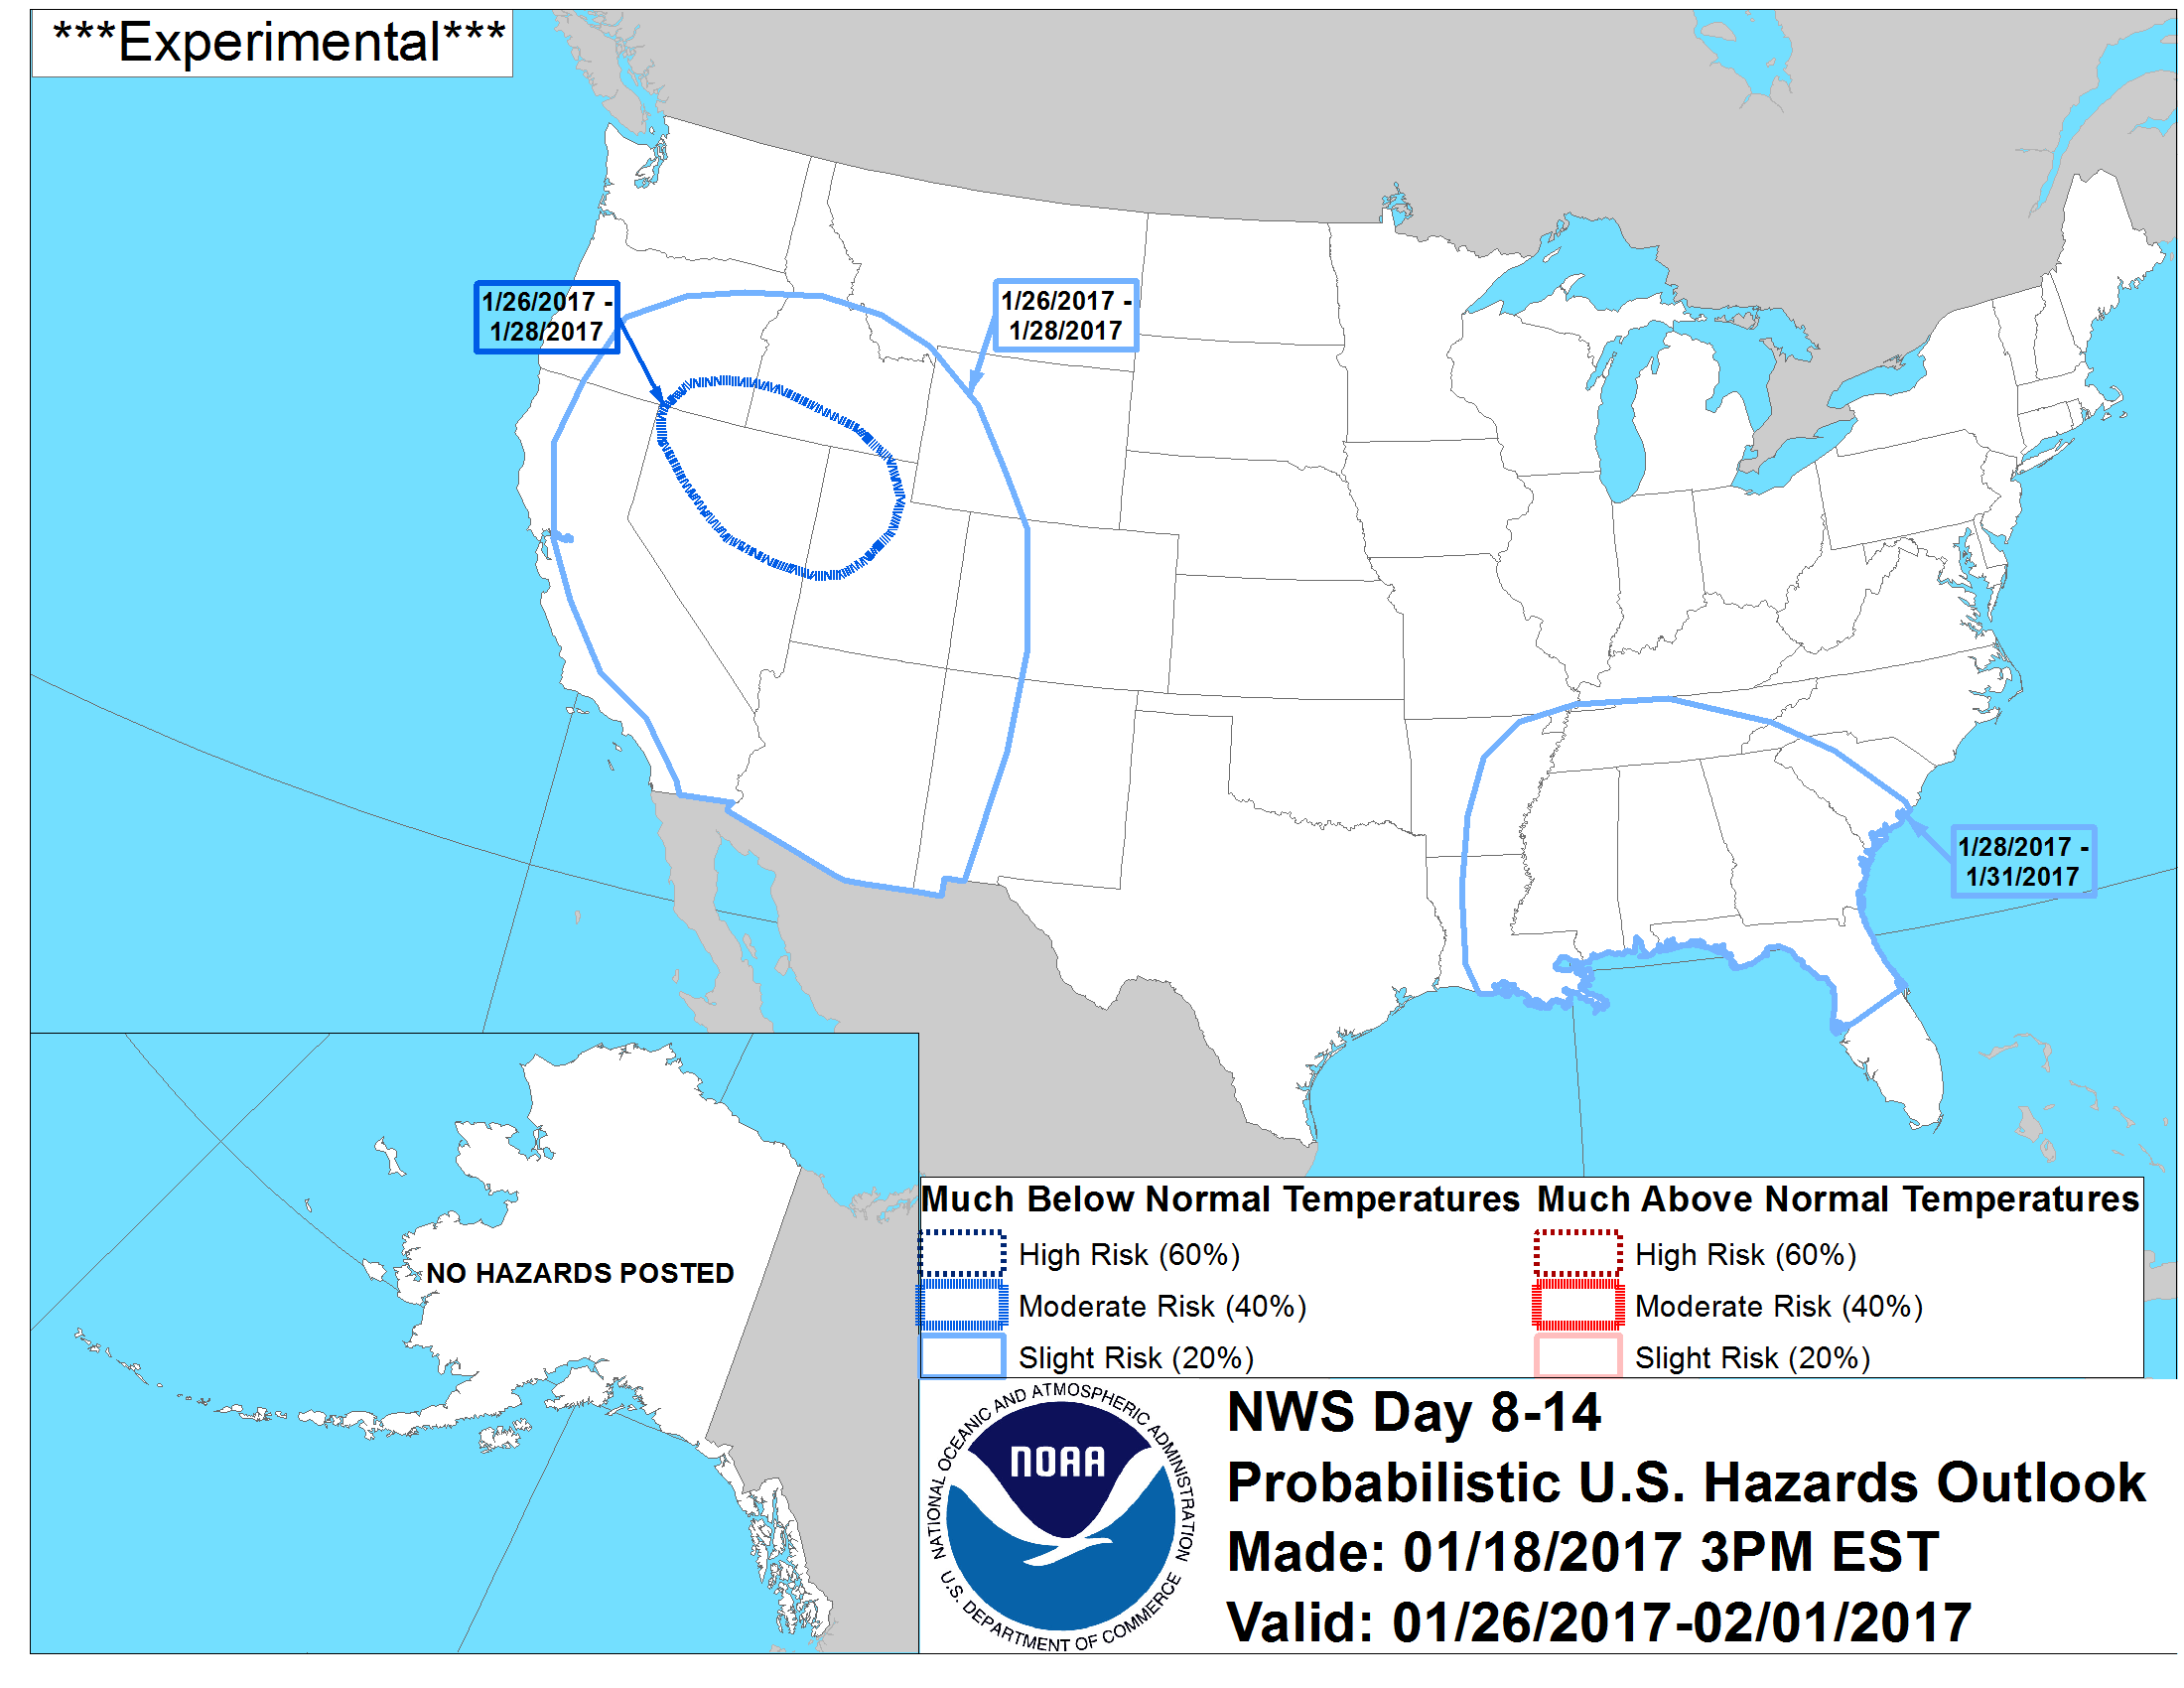 United States 8-14 Day Probabilistic Temperature Hazards Outlook